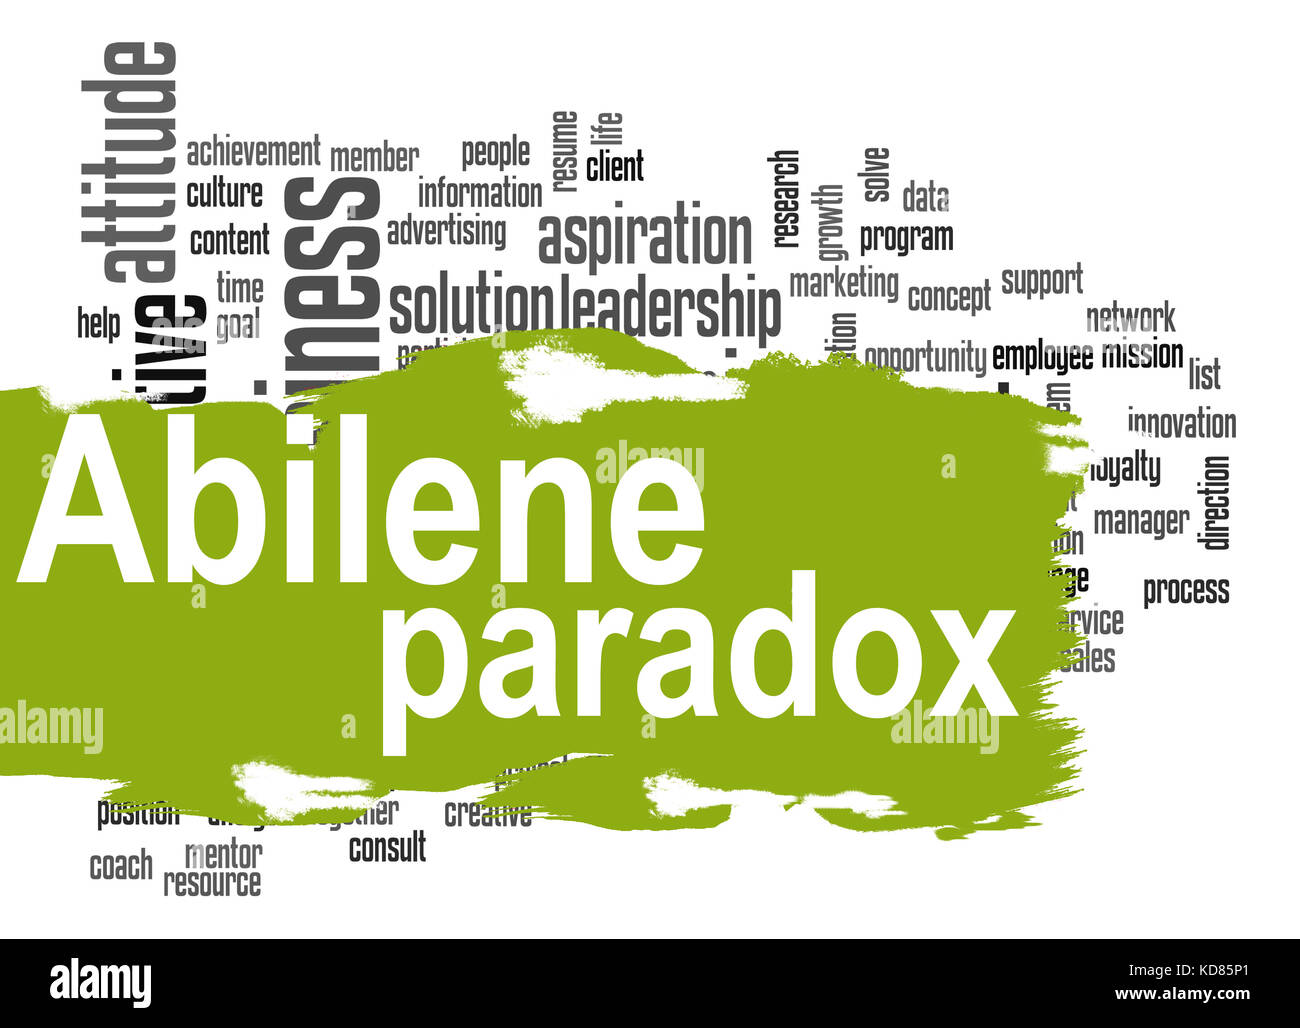 Abilene Paradox word cloud with green banner image with hi-res rendered artwork that could be used for any graphic Stock Photo